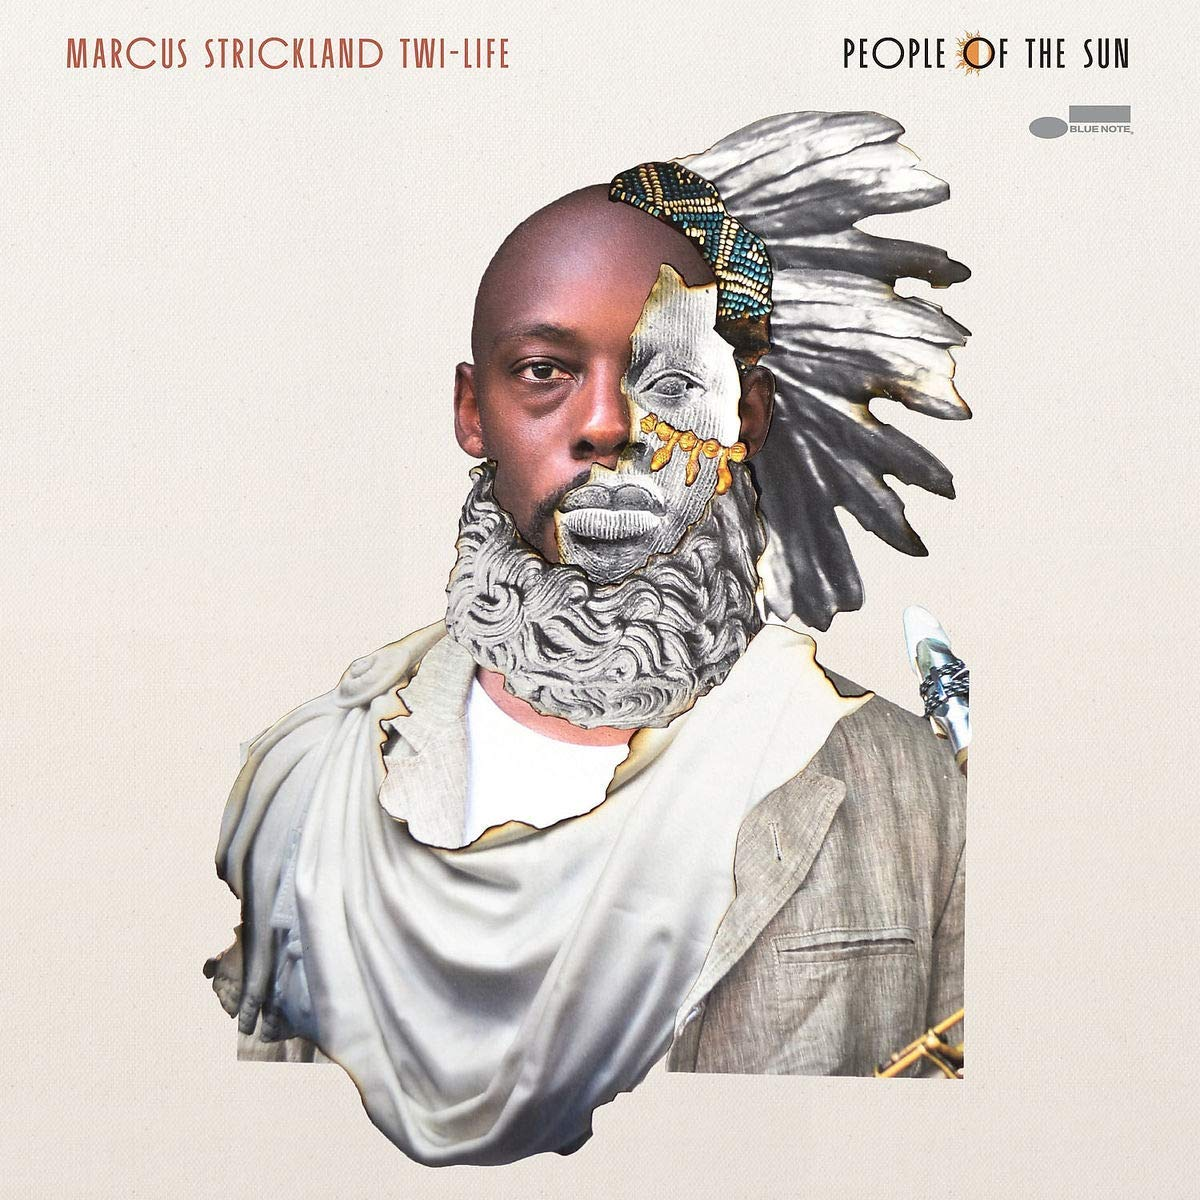 MARCUS STRICKLAND - Marcus Strickland Twi-Life : People Of The Sun cover